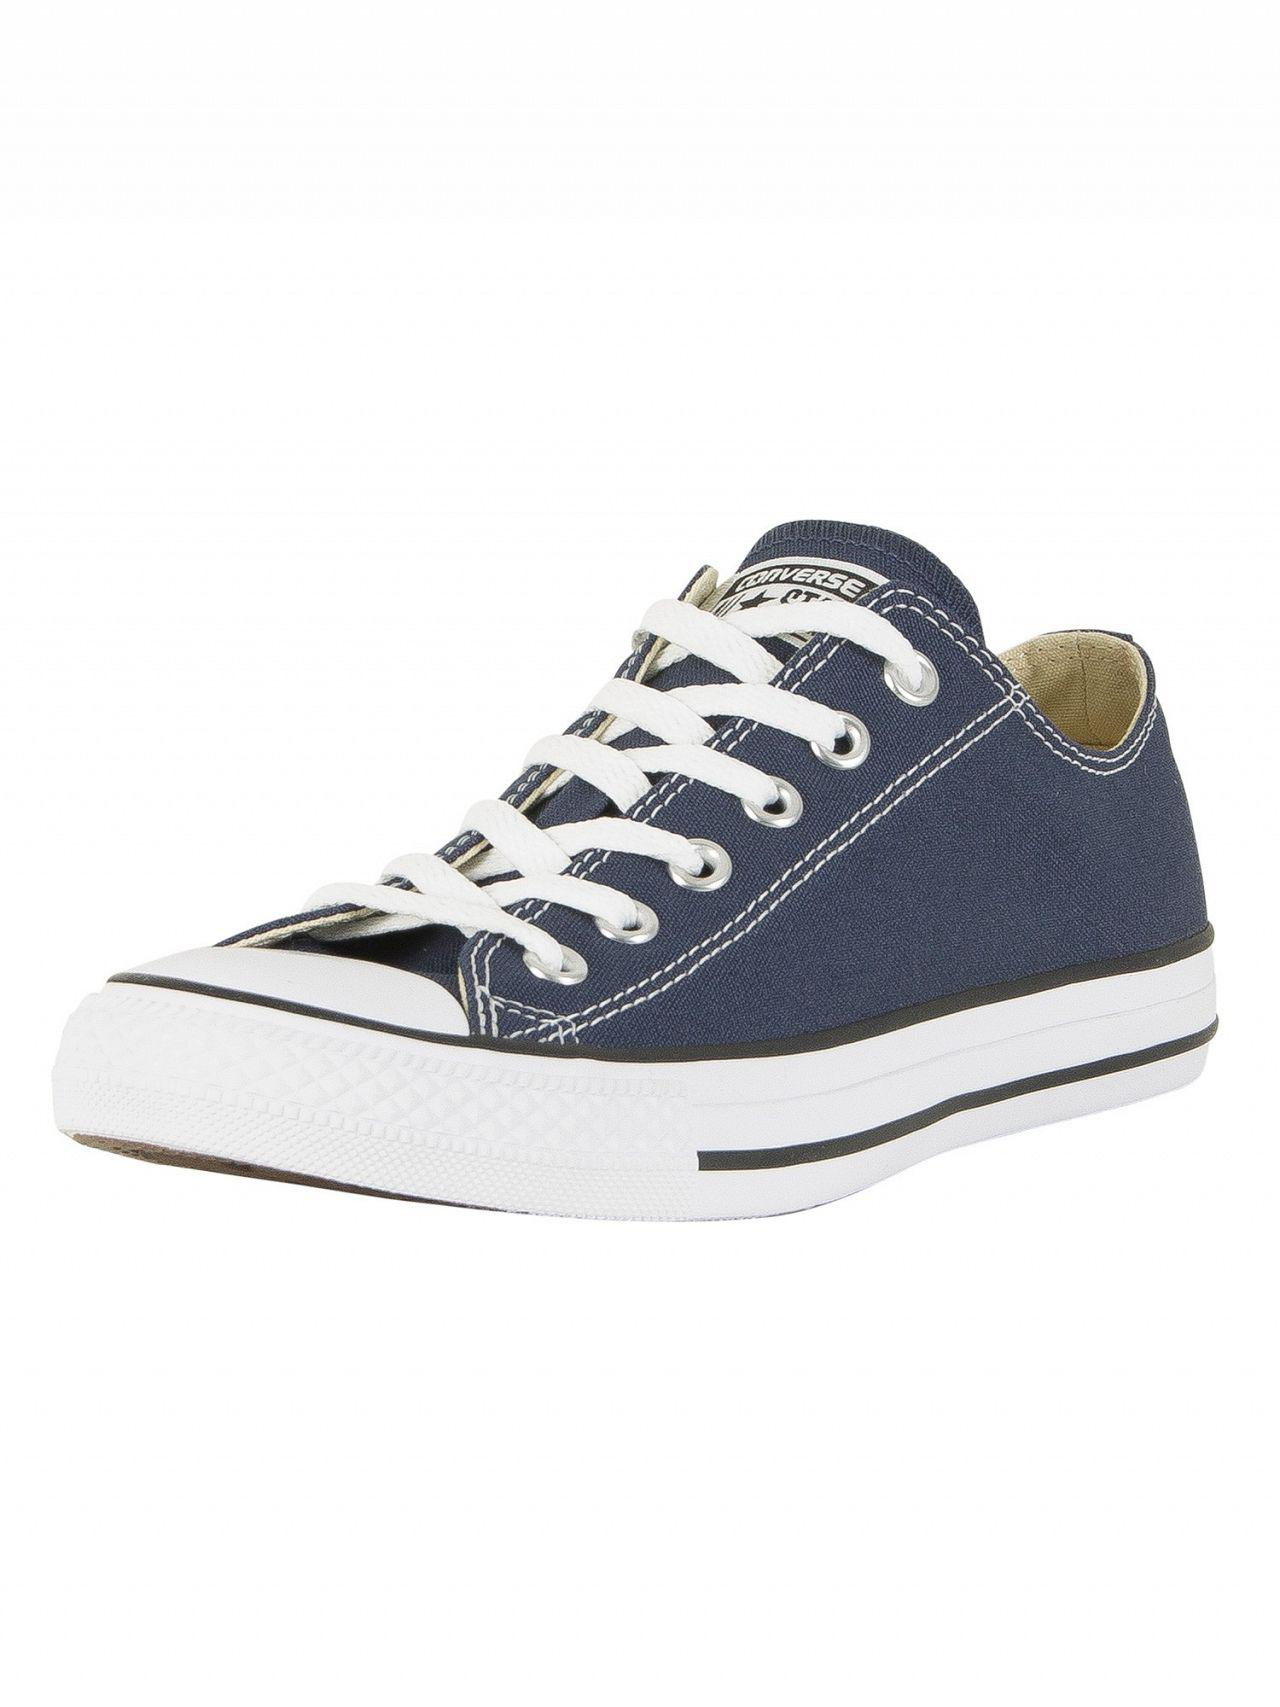 472d5072f0d12 Converse Navy All Star Ox Trainers in Blue for Men - Save 11% - Lyst